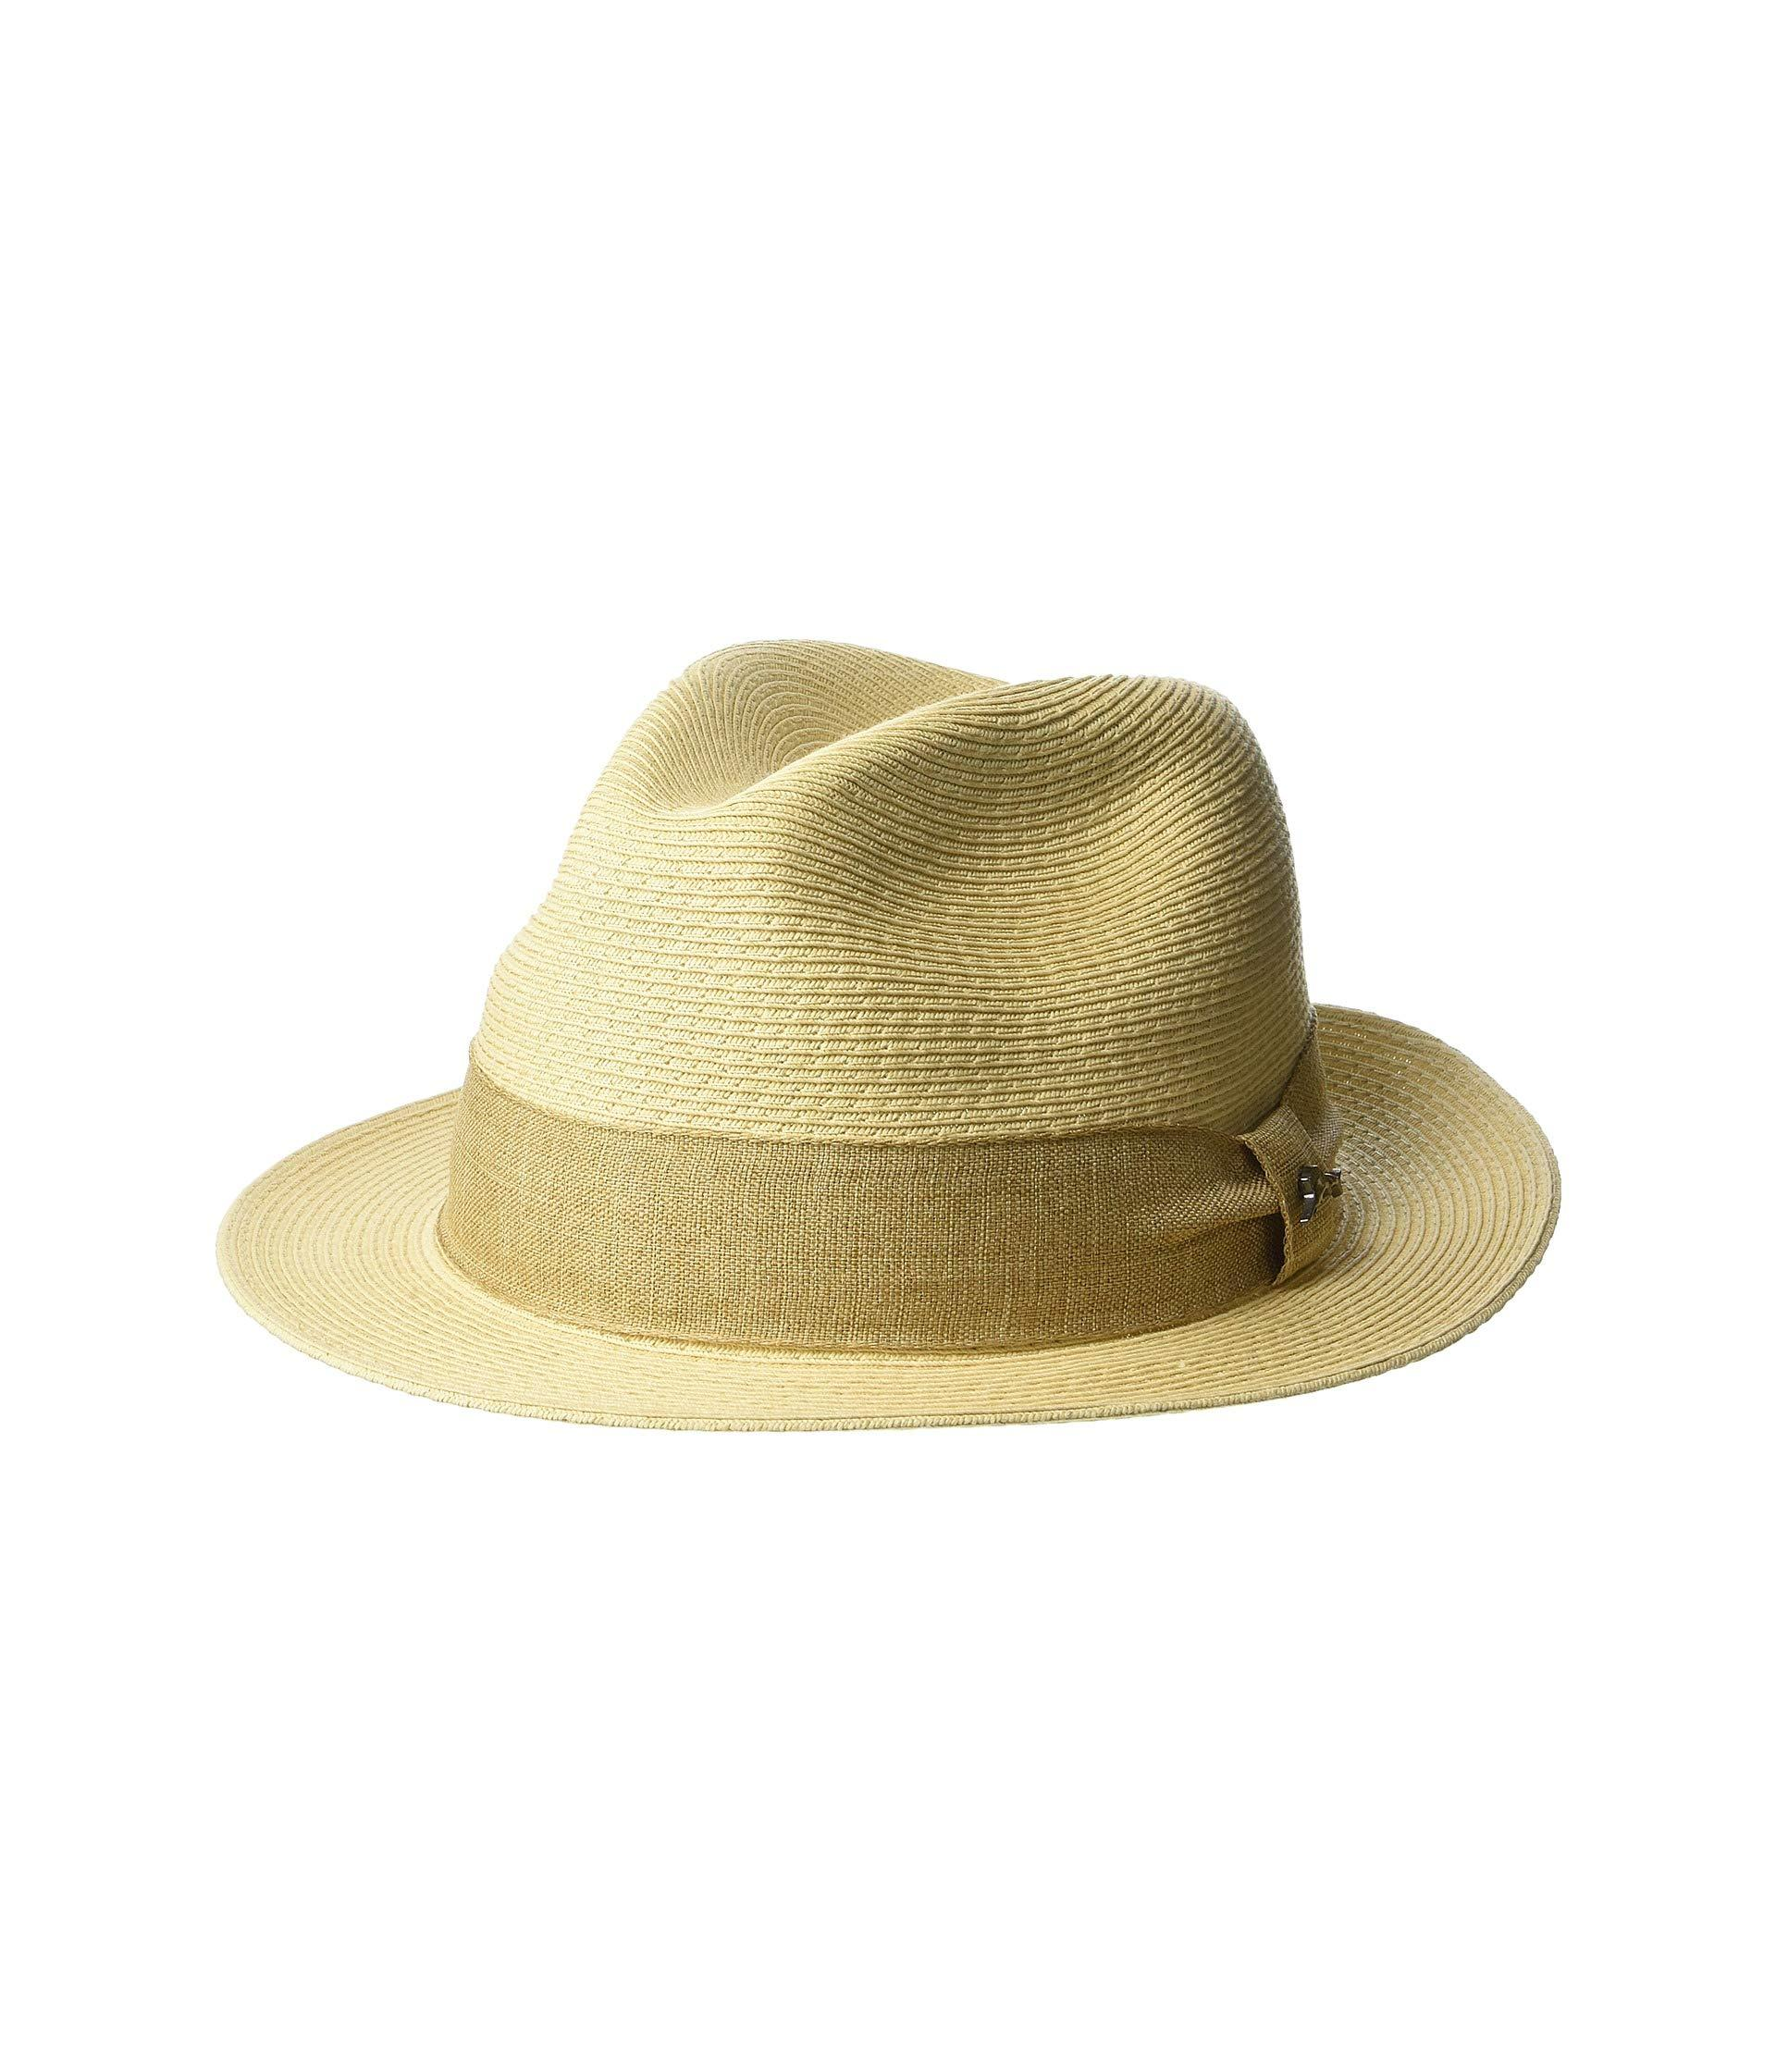 f652a5f48d74e Lyst - Tommy Bahama Fine Braid Toyo Fedora (natural 2) Caps in ...